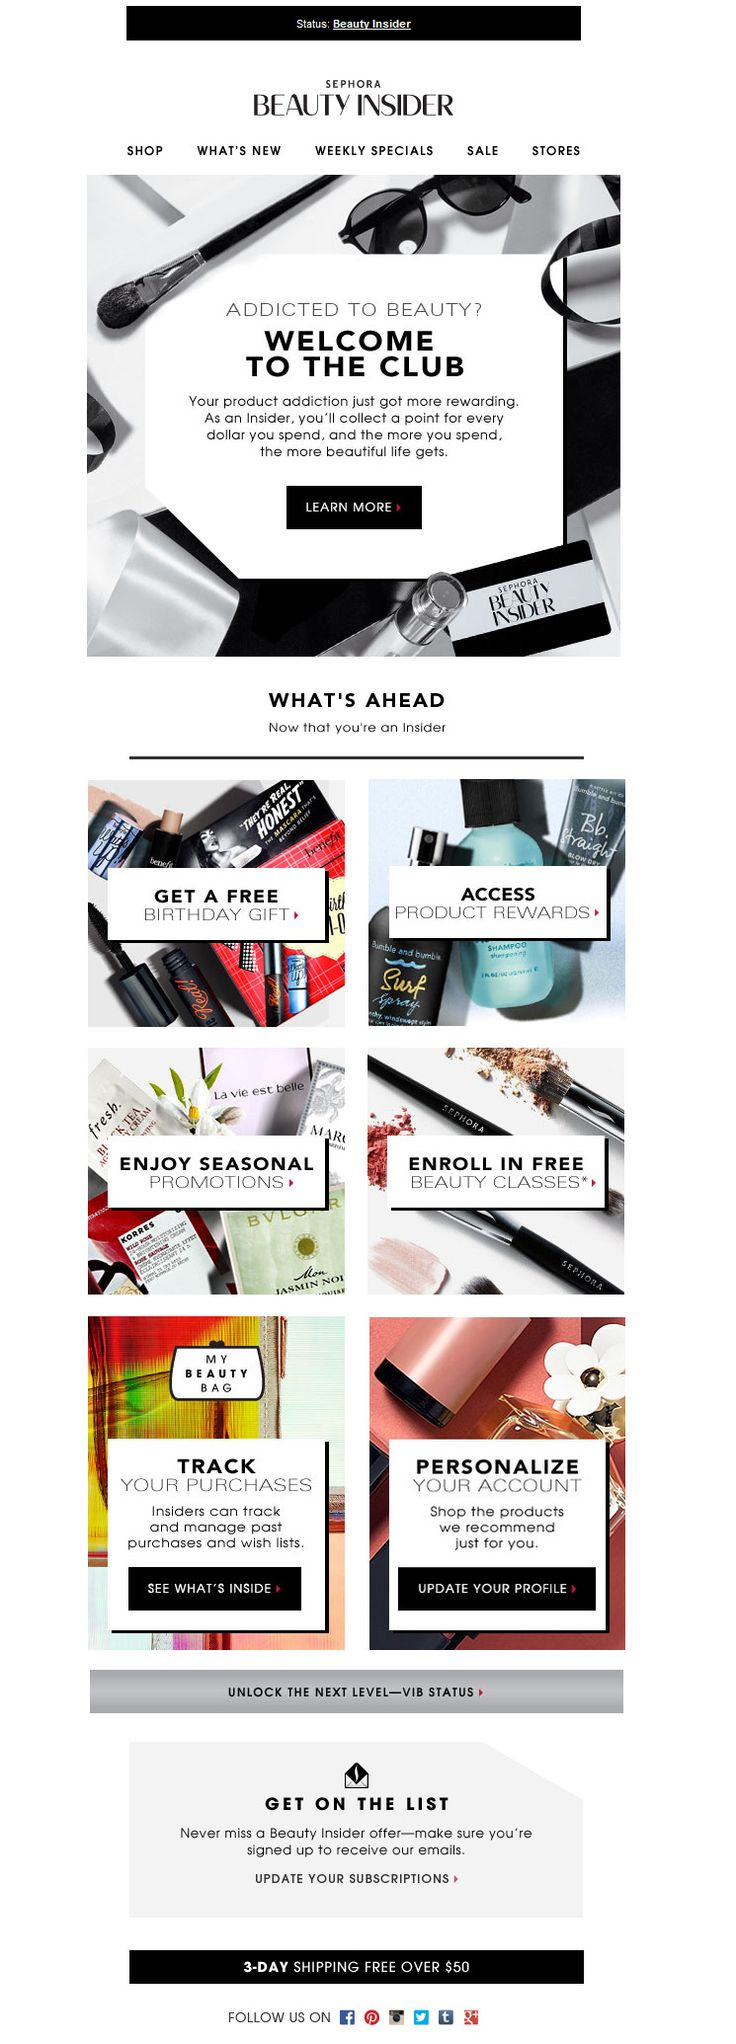 Beauty Insider - Sephora  | welcome | WelcomeEmails | emailmarketing | email | newsletter | welcome newsletter | welcome email | WelcomeEmail | relationship emails | emailDesign